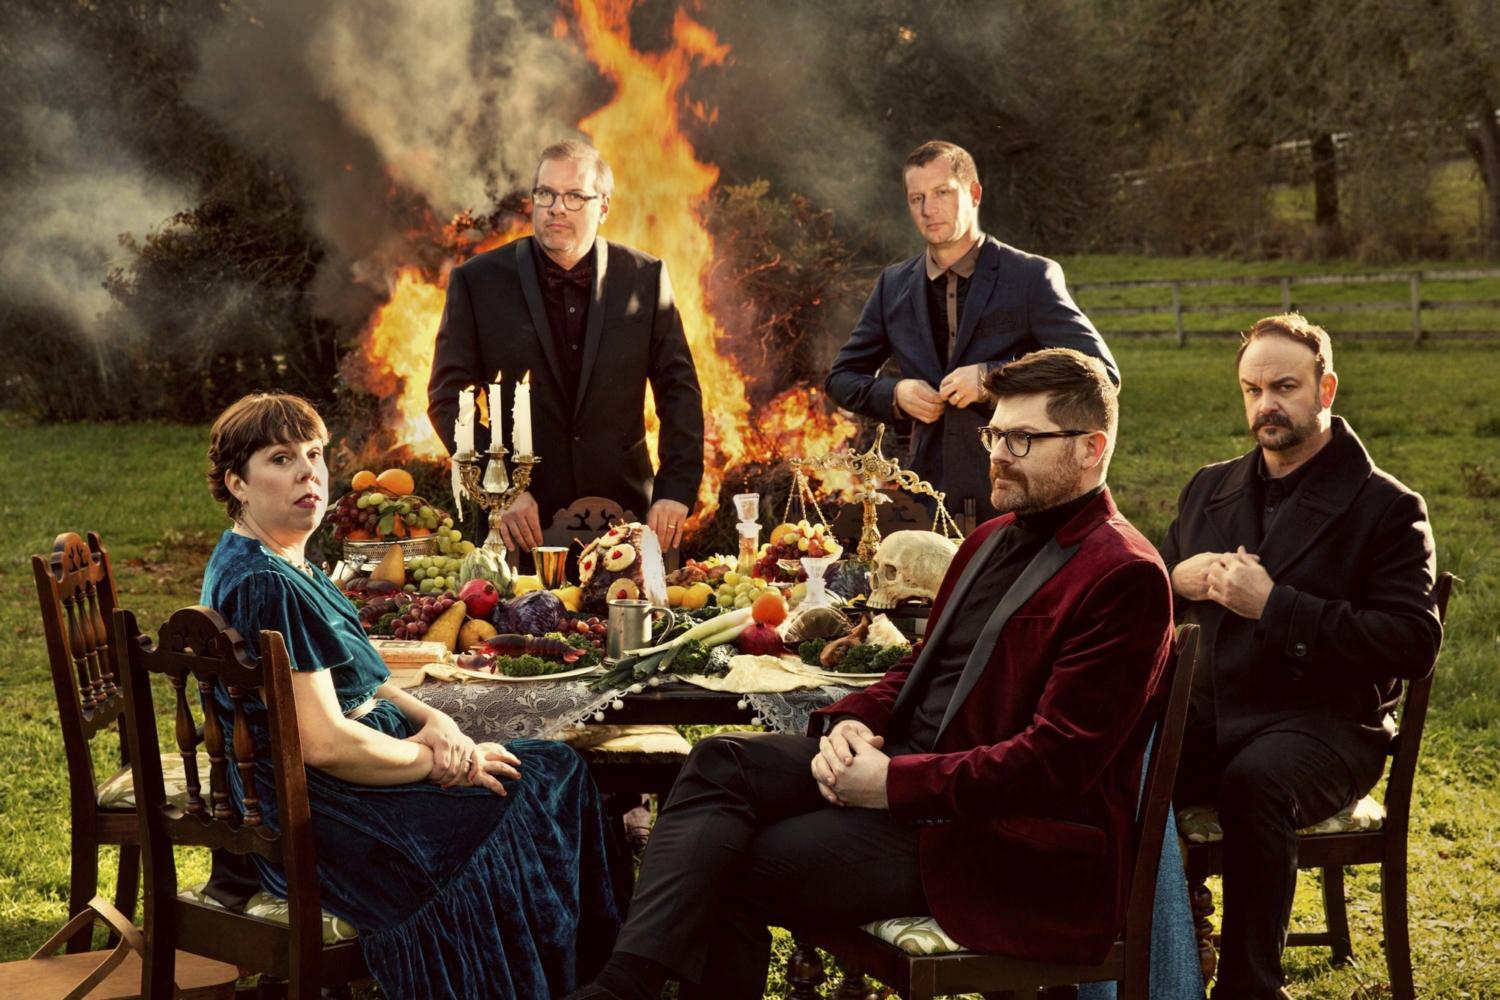 The Decemberists - Severed